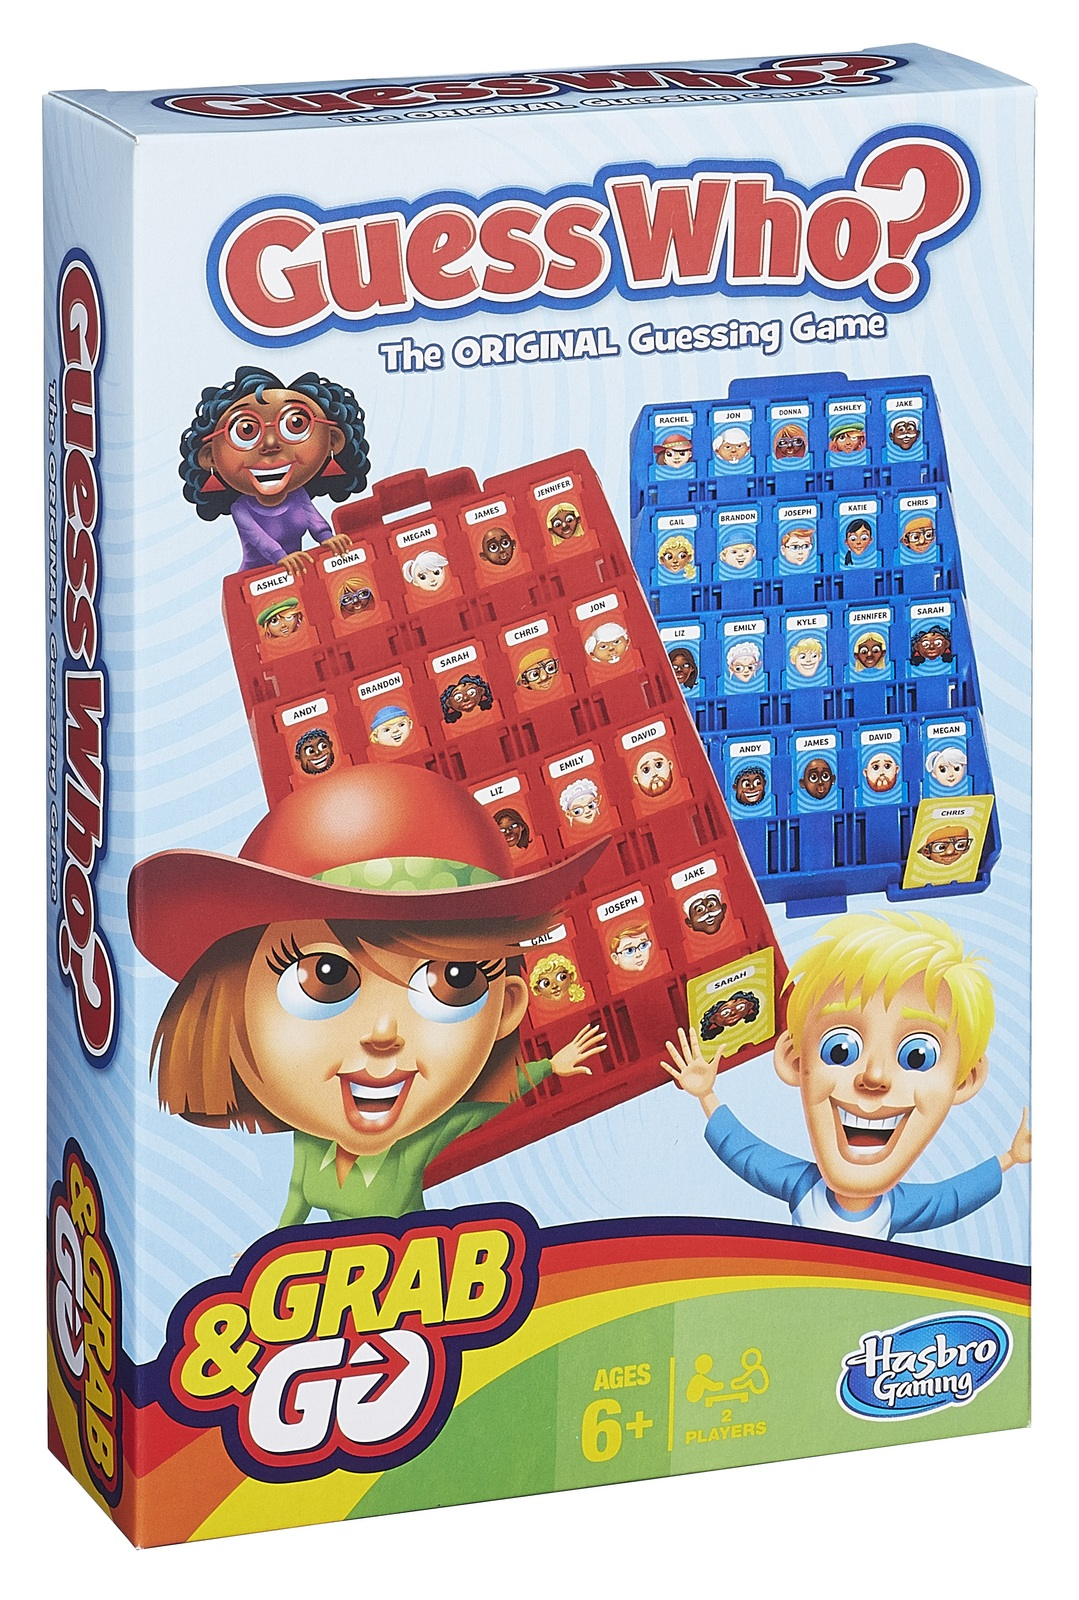 Guess Who - Grab & Go Edition image